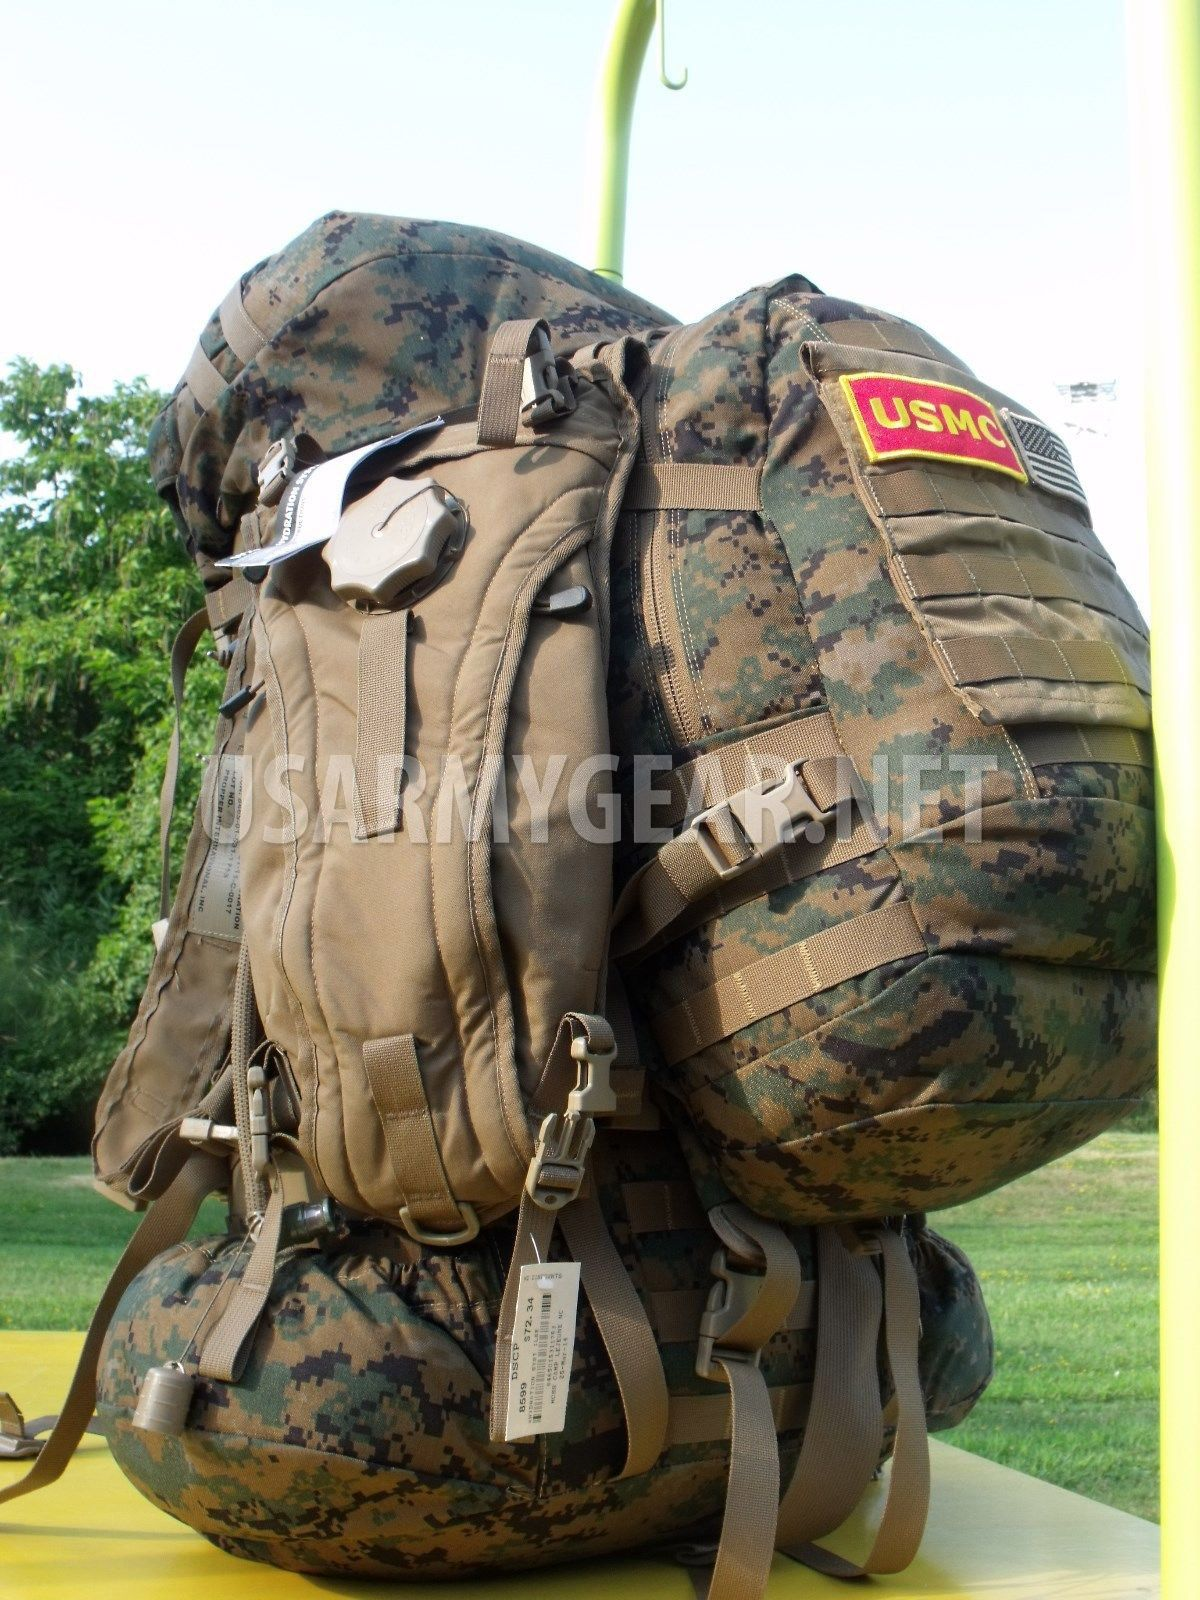 dfb63caaee79 USMC GEN 2 Complete ILBE Back Pack RuckSack System Set + Assault Pack | US  Army Gear